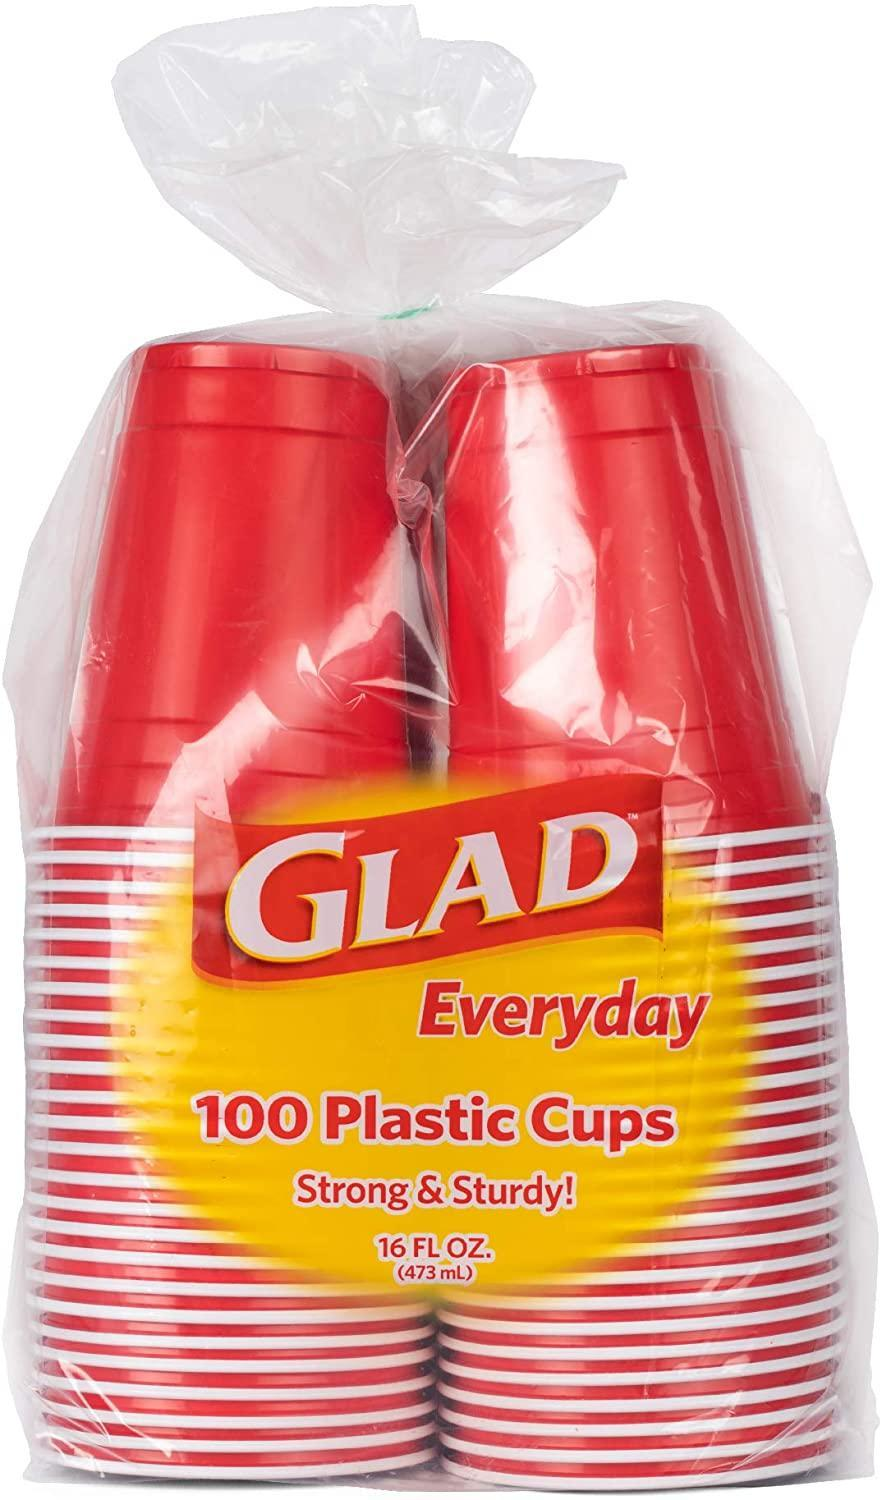 Glad Everyday Disposable Plastic Cups